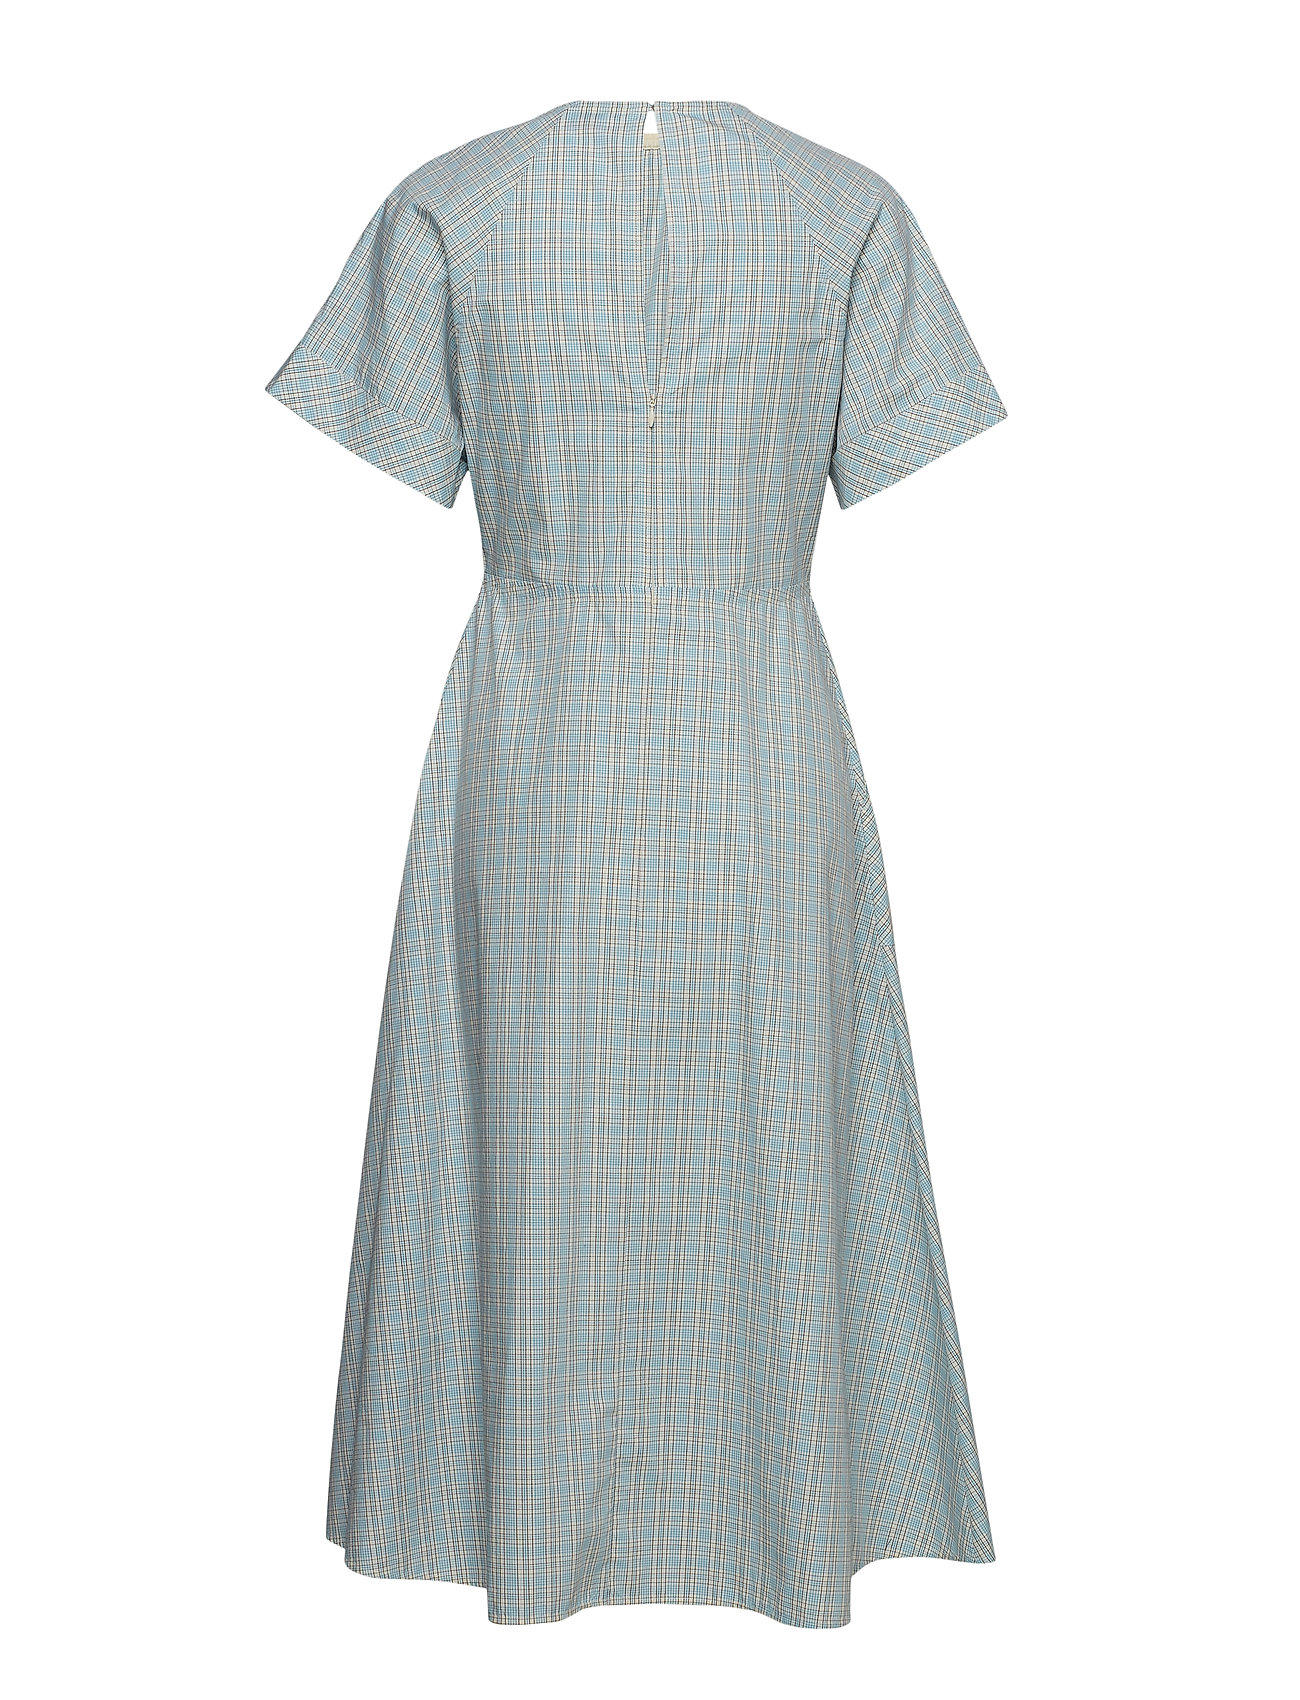 Calvin Blau Farmhouse Chk Dress Kleid Pocket Ss Knielang 35Sale dQthrs